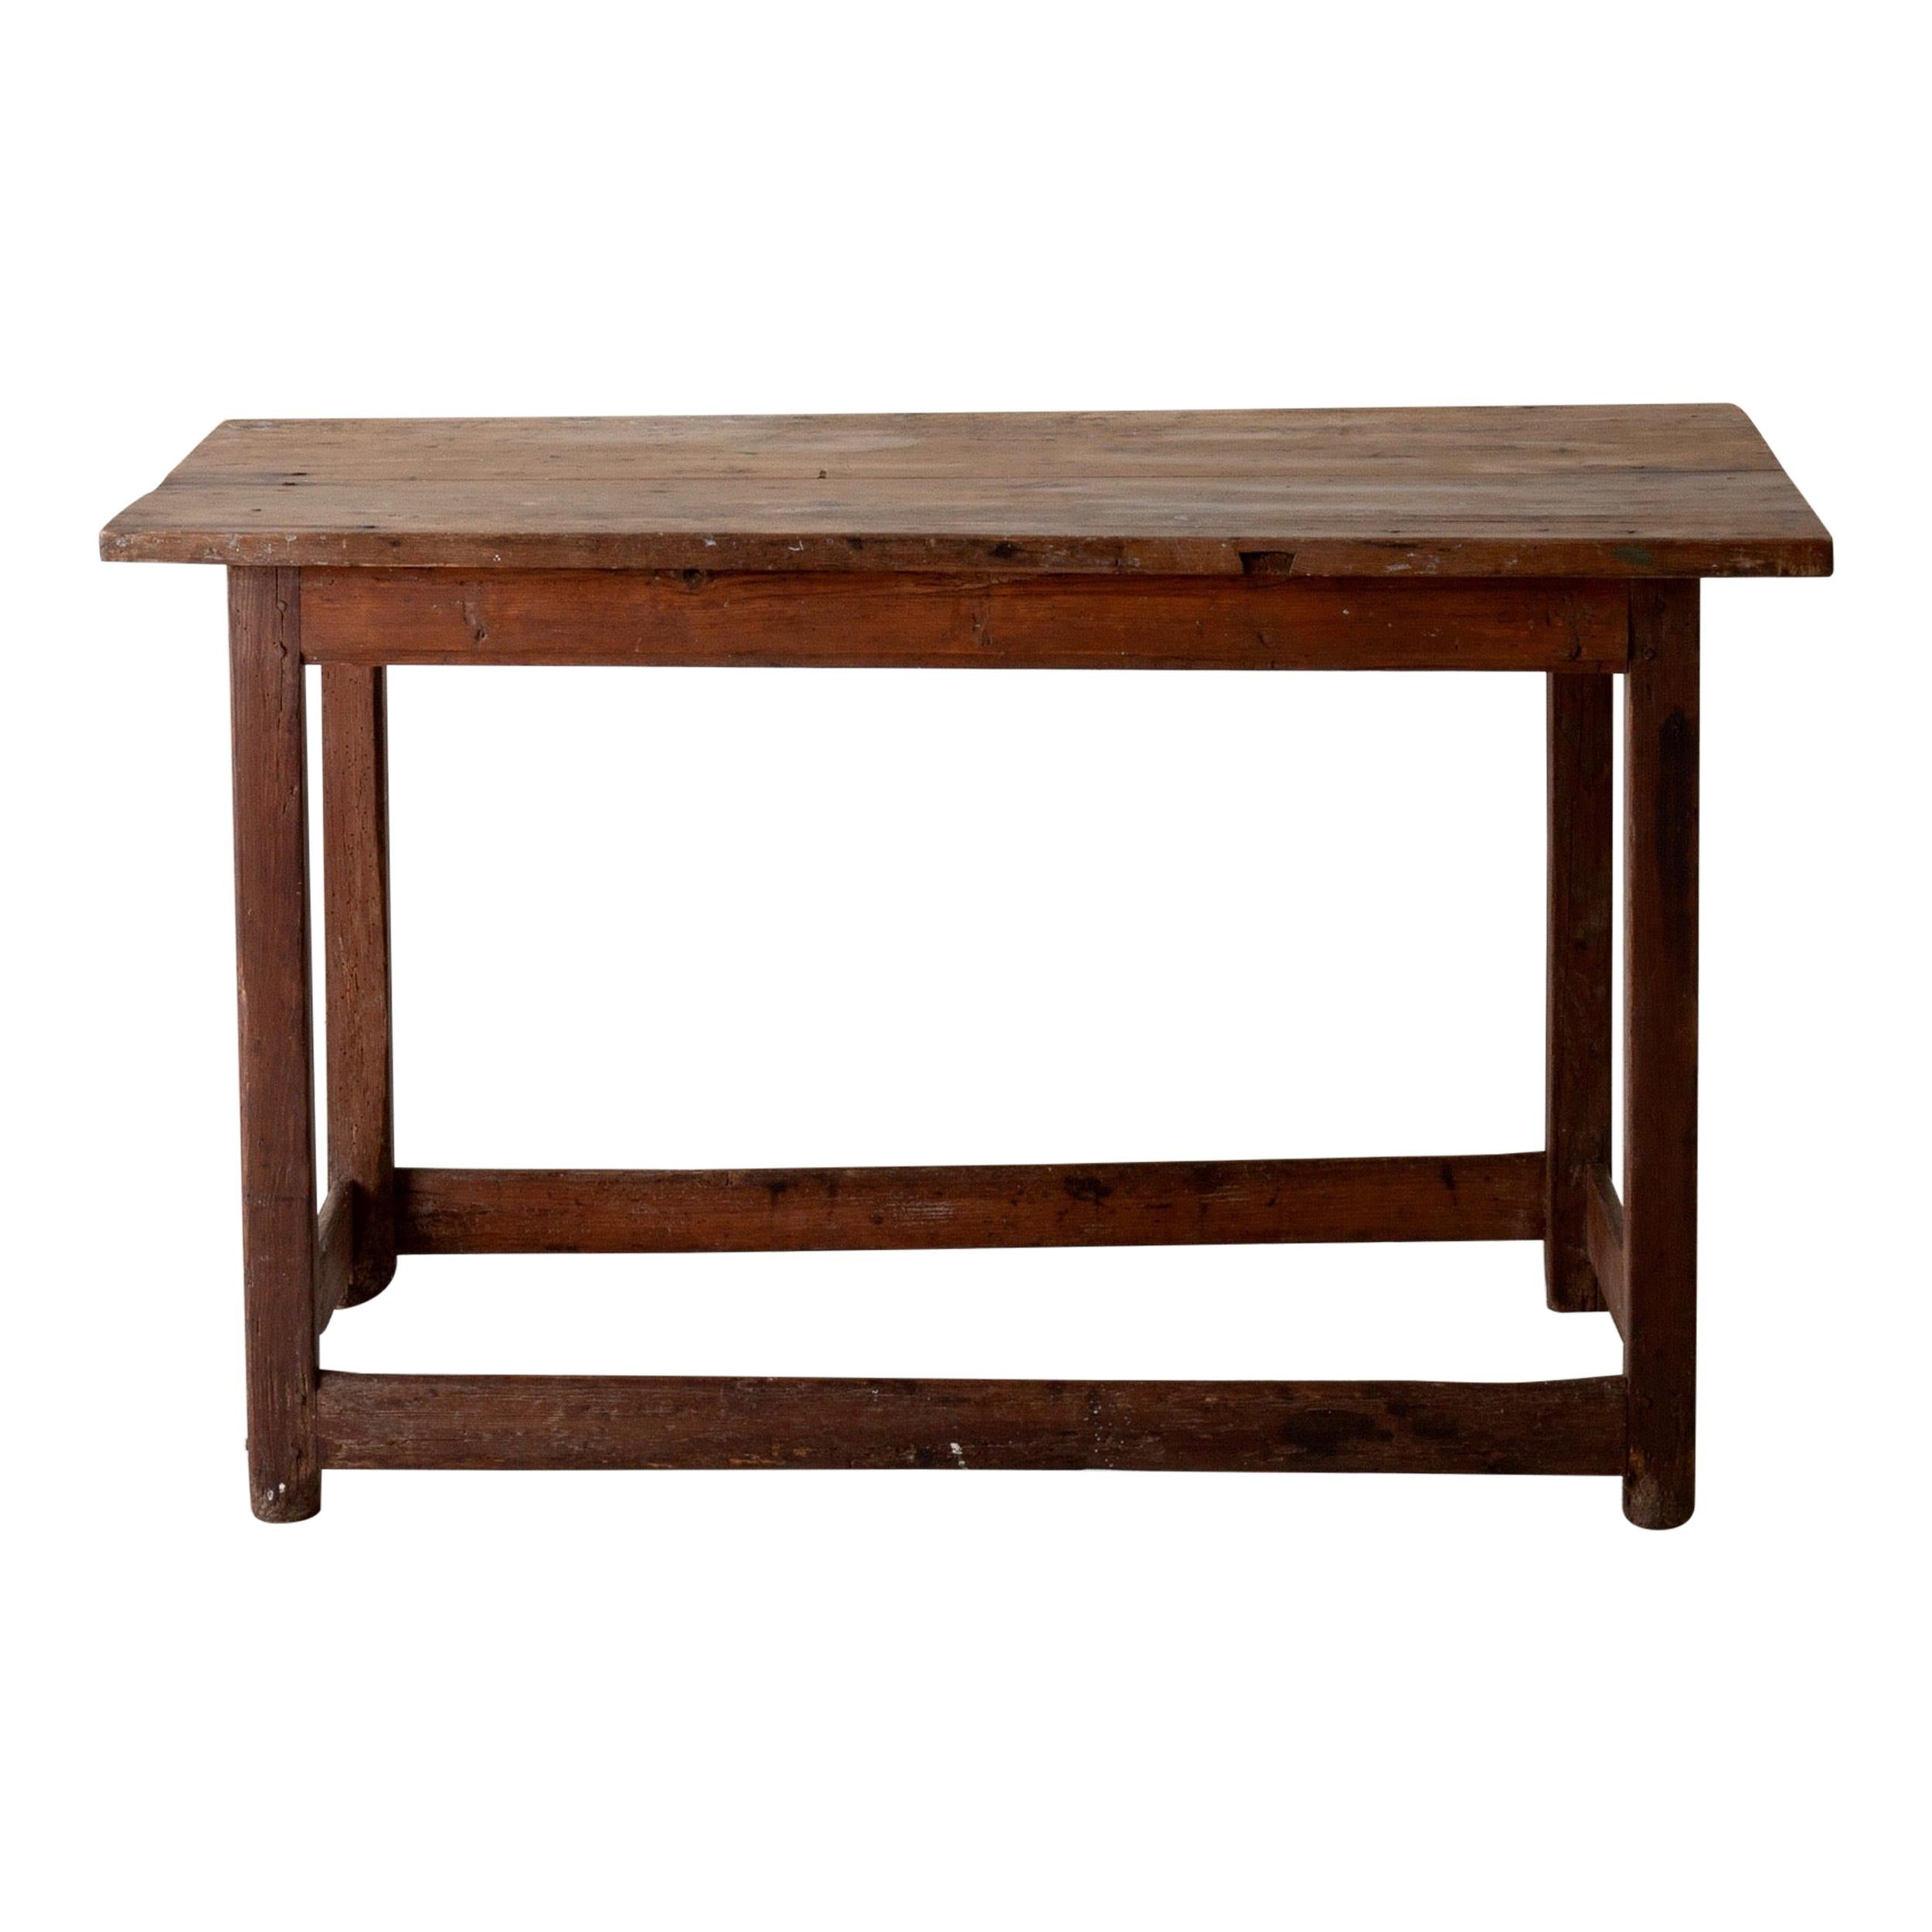 Table Work Table Swedish Rustic 18th Century Red Brown Sweden